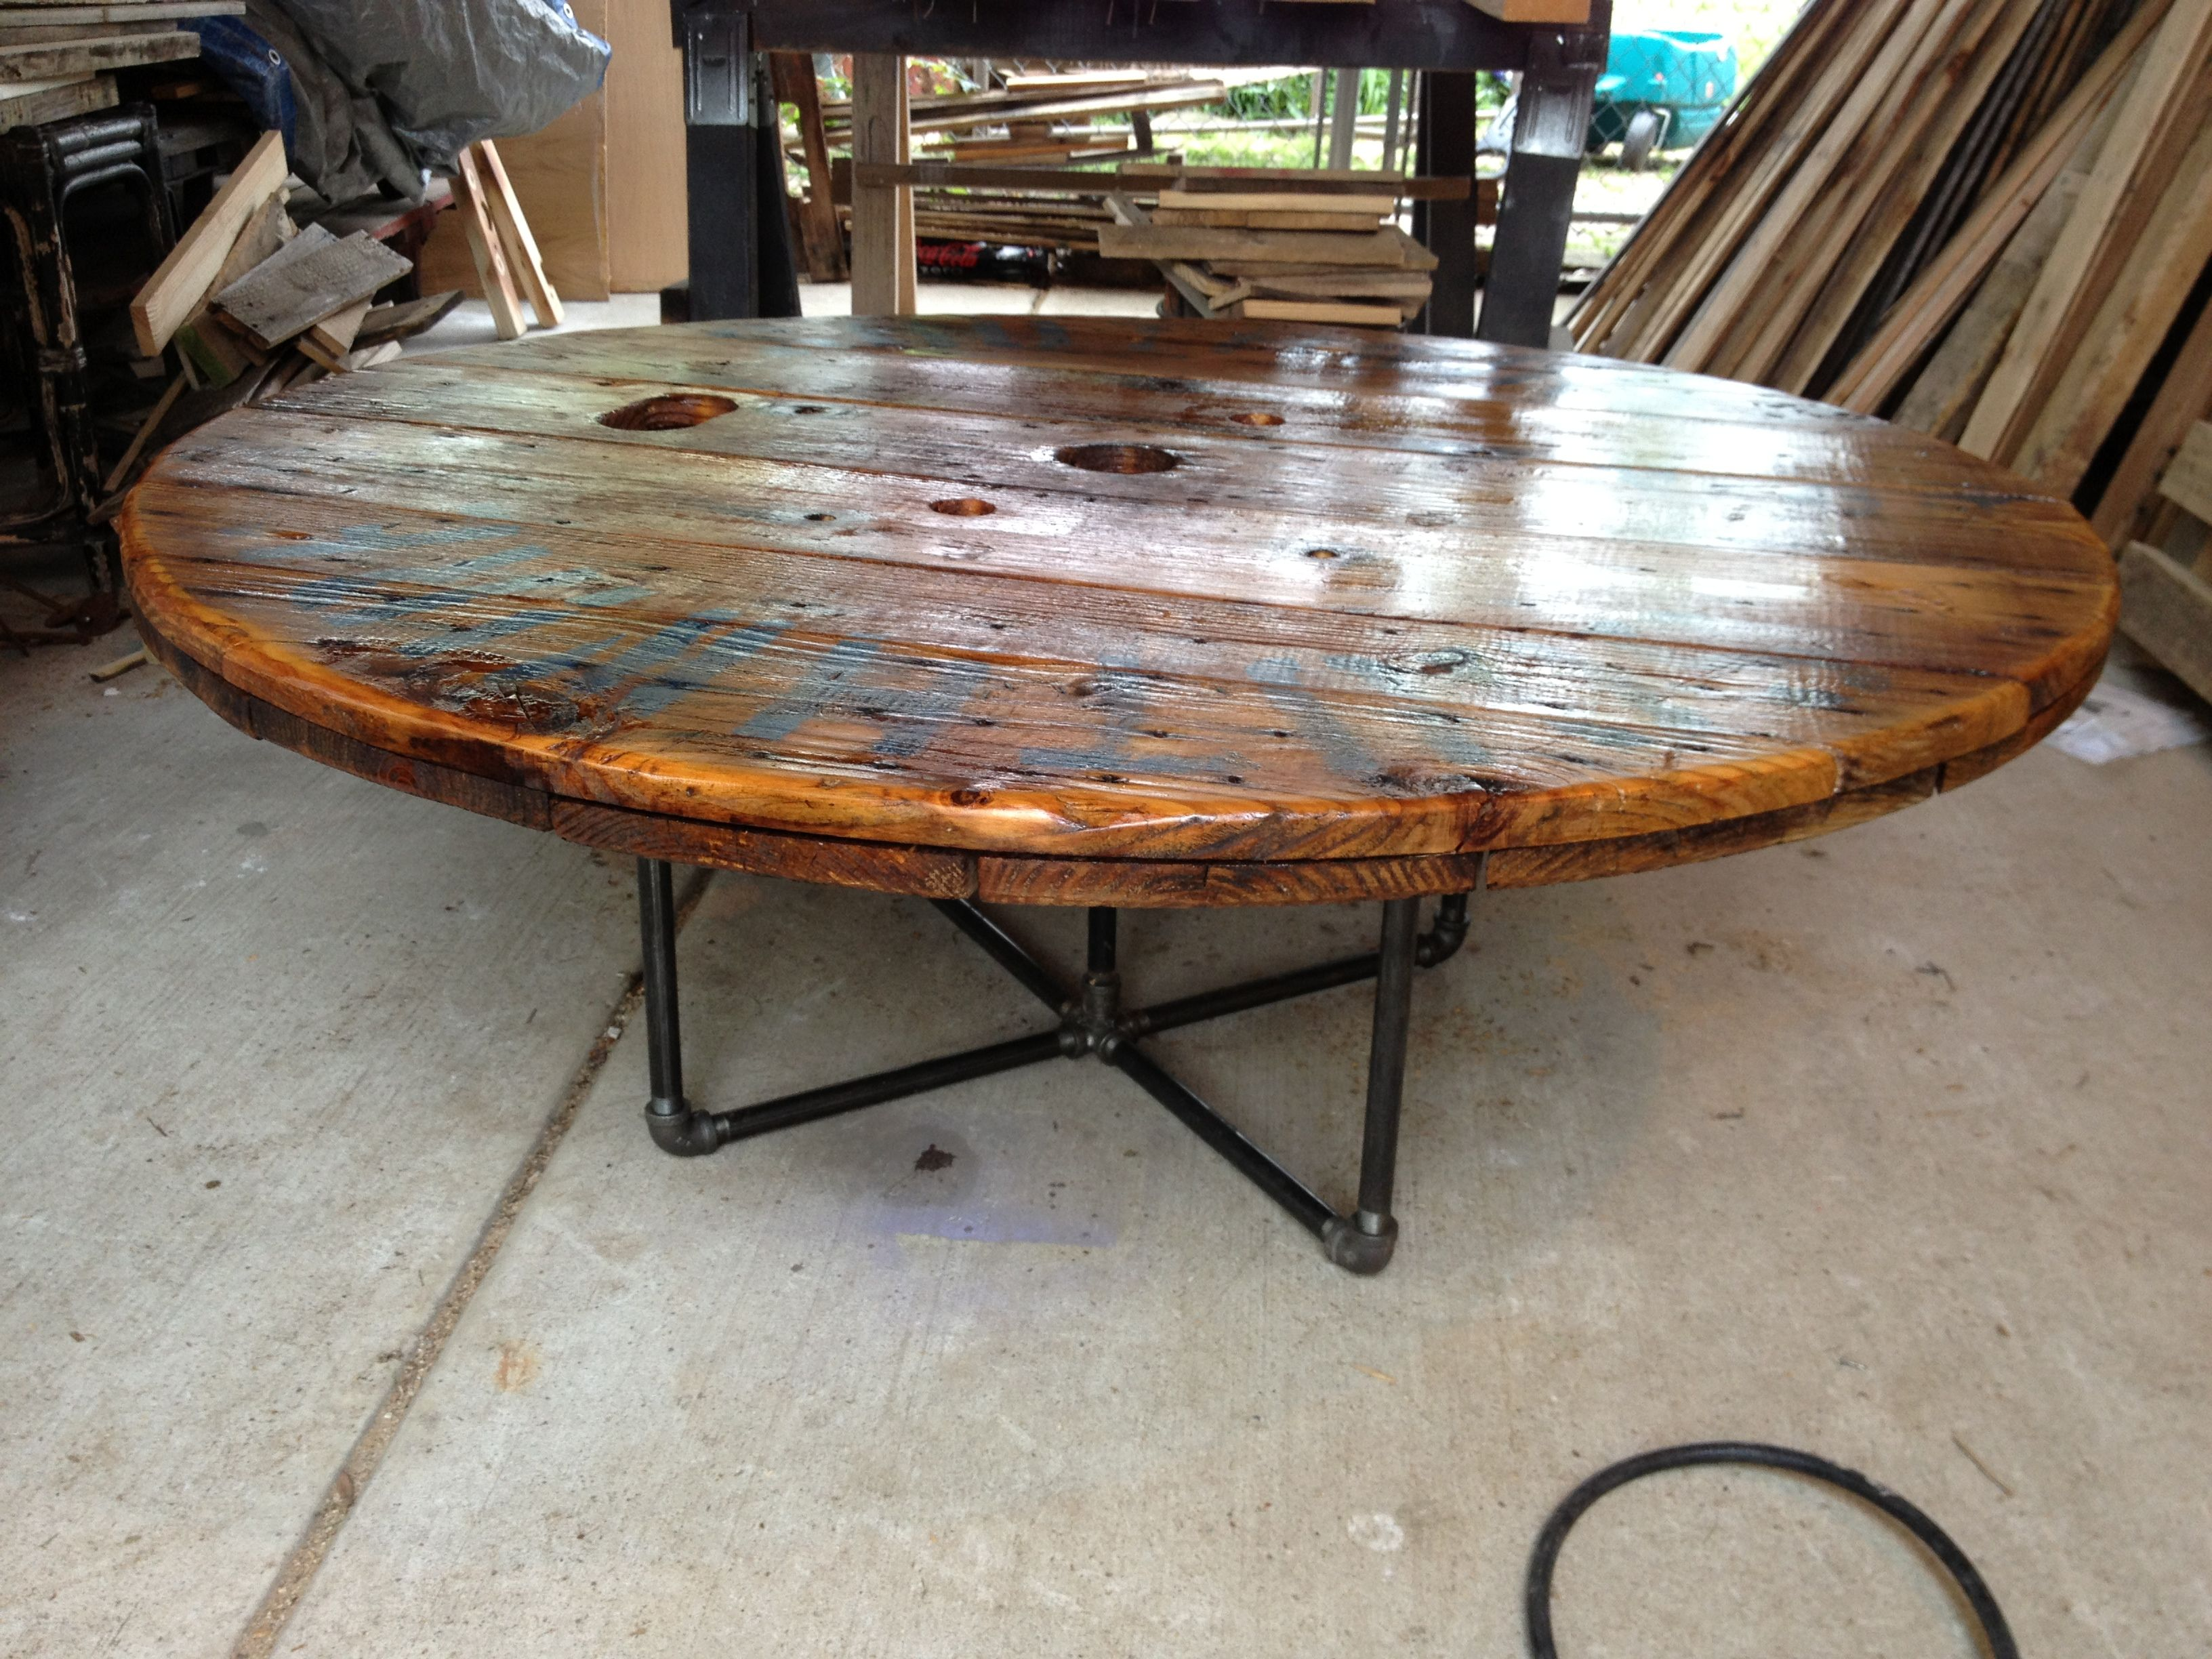 Coffee Table made from an old cable spool